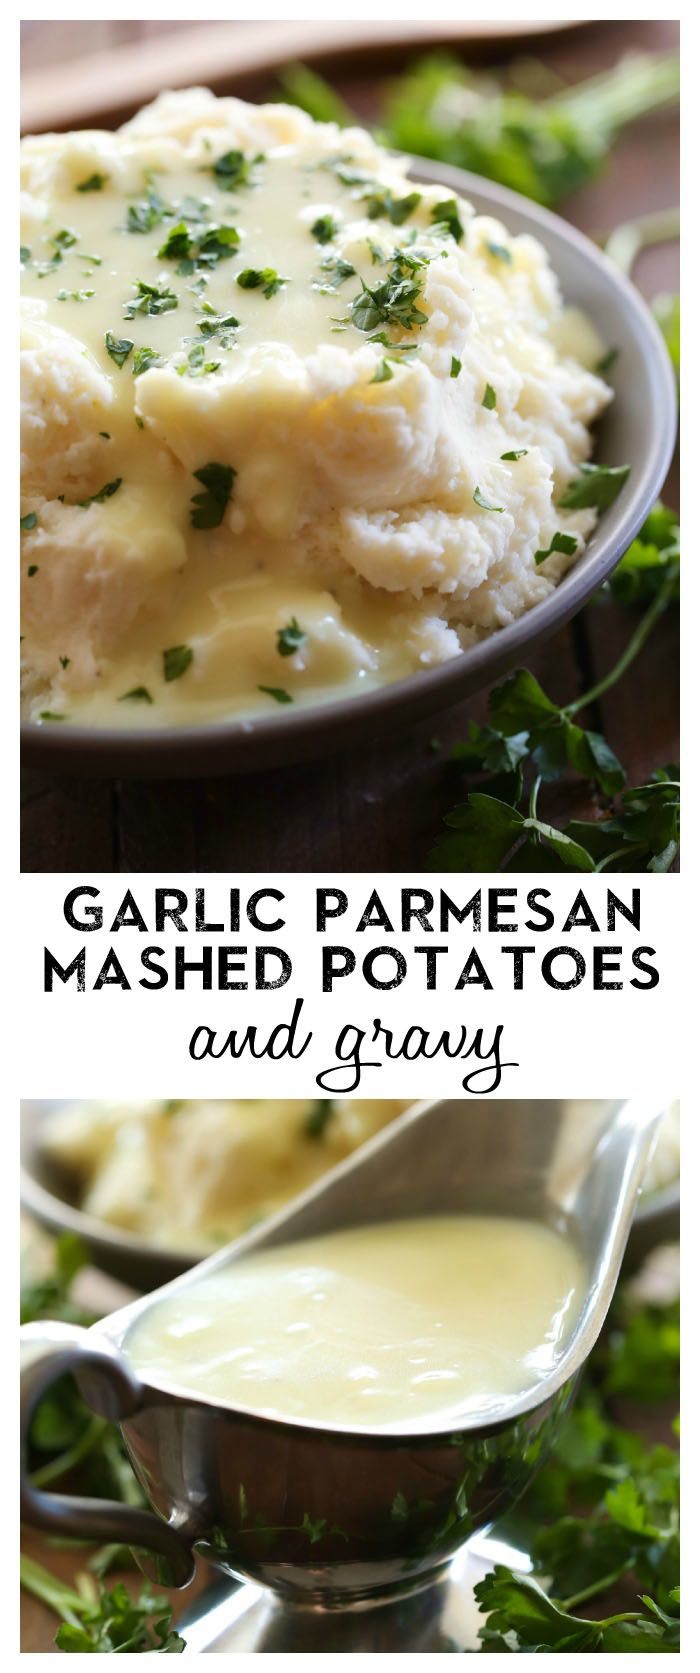 Garlic Parmesan Mashed Potatoes and Gravy from chef-in-training.com ...The flavor of these potatoes is outstanding and the gravy is equally amazing! This is the perfect side dish for almost any meal!